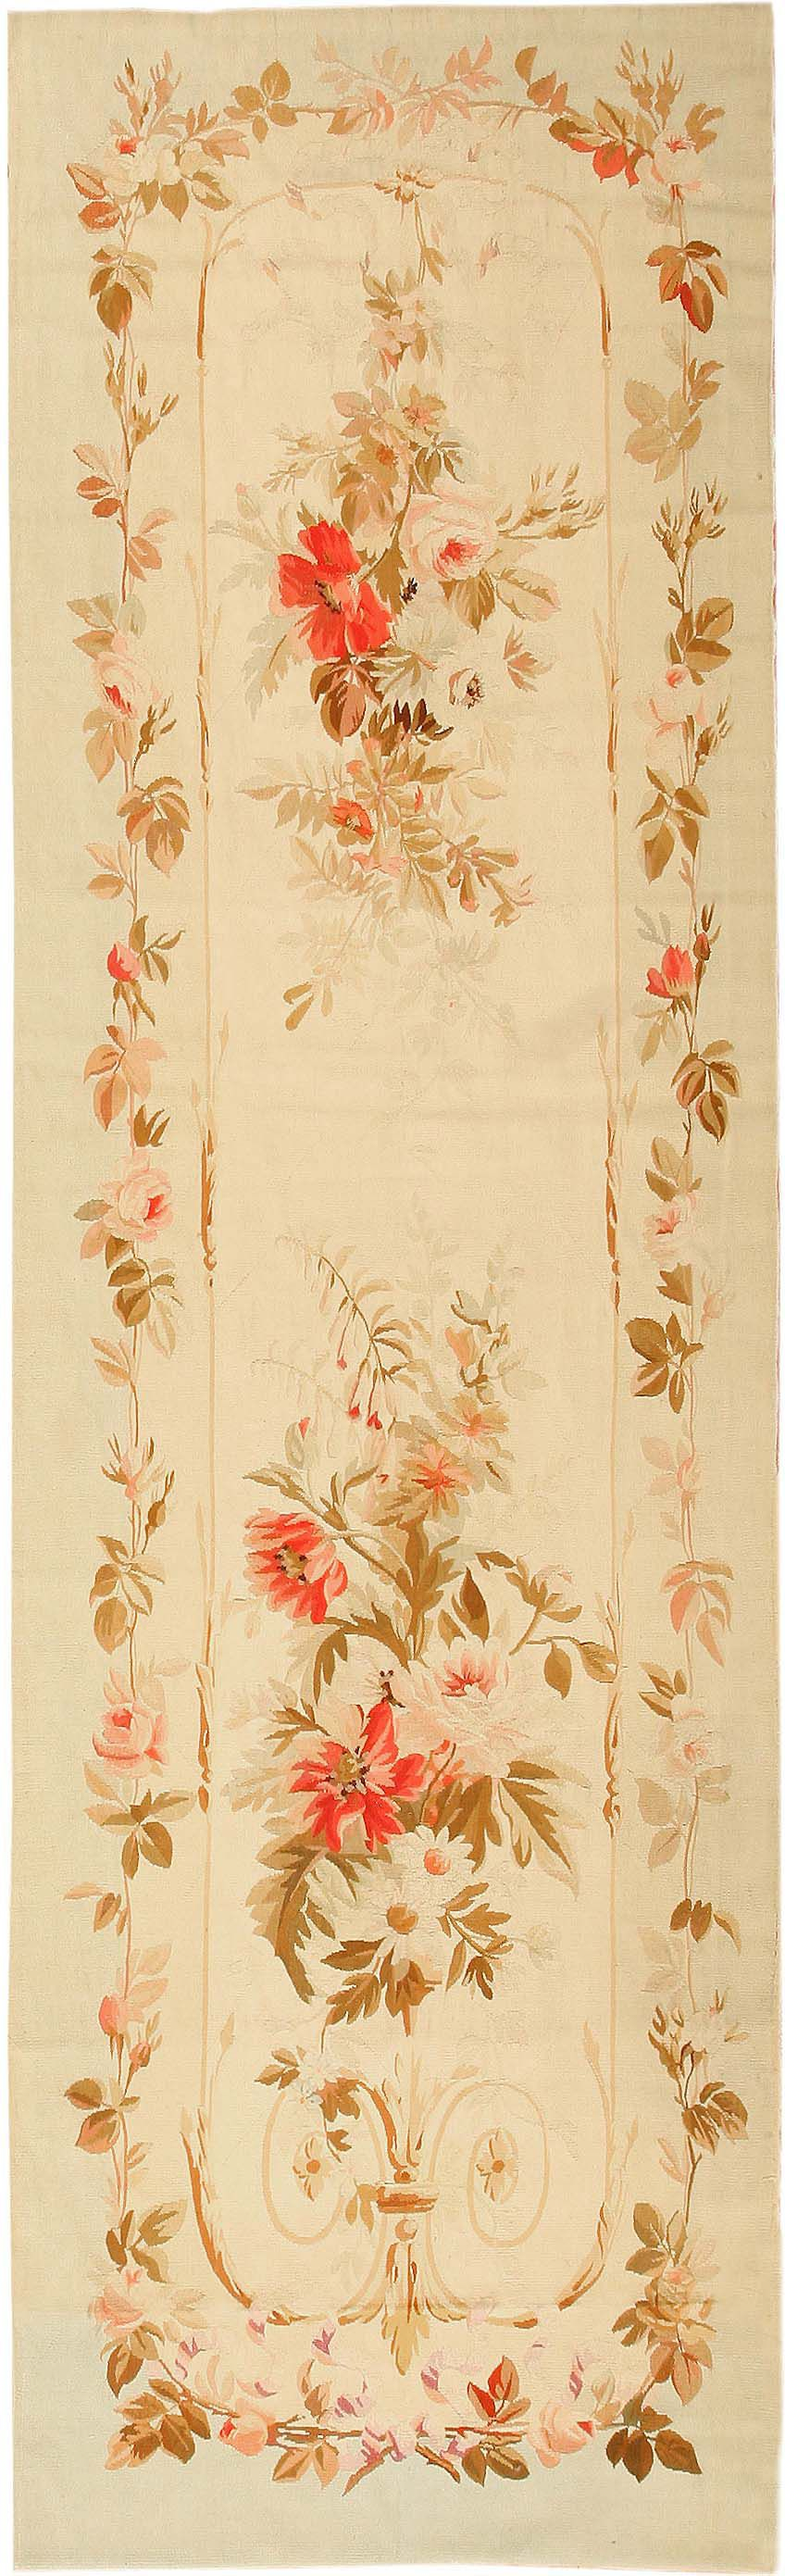 Spectacular Aubusson Rugs Ebay | Astounding Aubusson Rugs